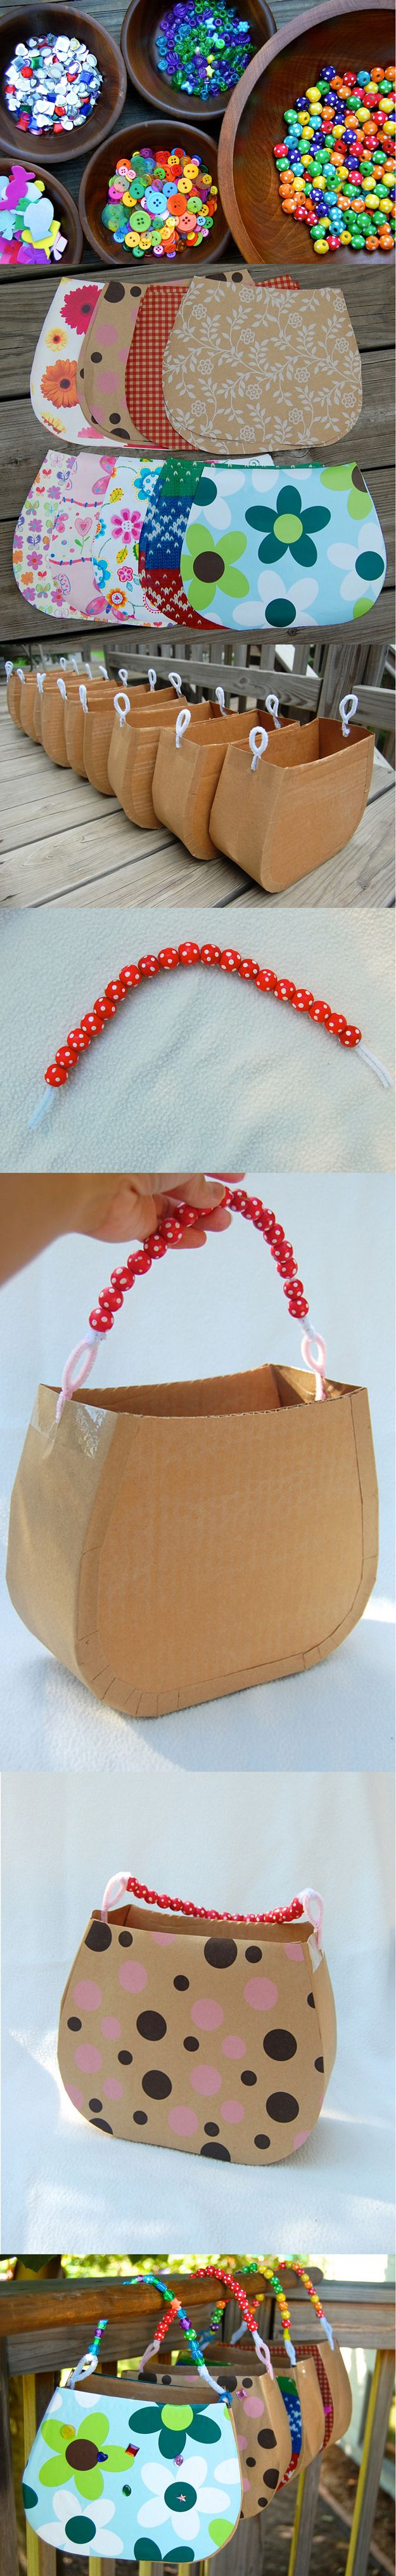 Cardboard Handbags | Cute and Fun Birthday Activities For Girls by Diy Ready http://diyready.com/19-awesome-birthday-party-craft-ideas-that-will-make-your-day-special/